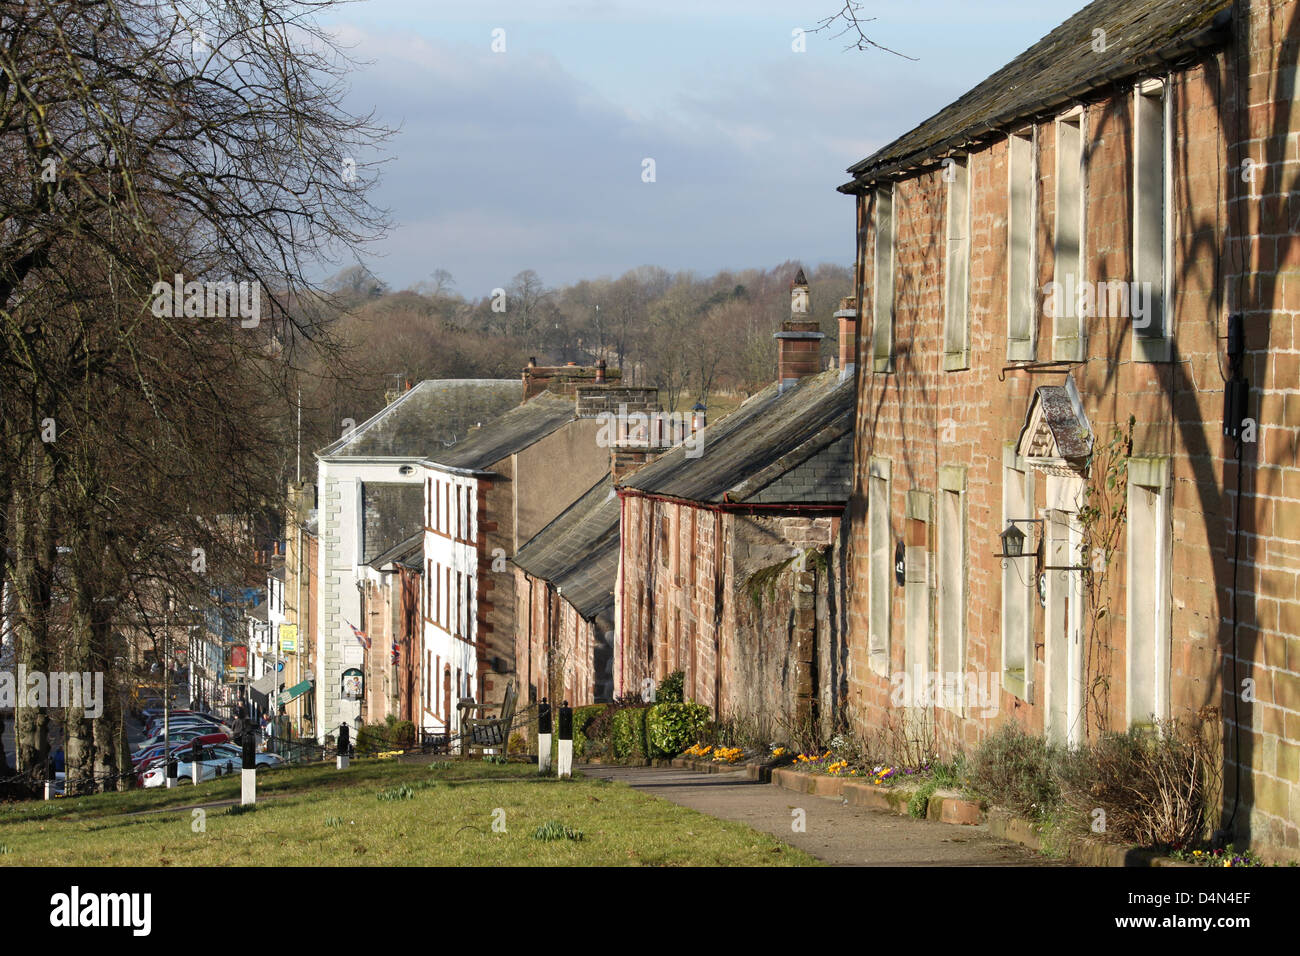 View down Boroughgate in Appleby, Cumbria past outside of St. Annes Hospital (Almshouse) - Stock Image